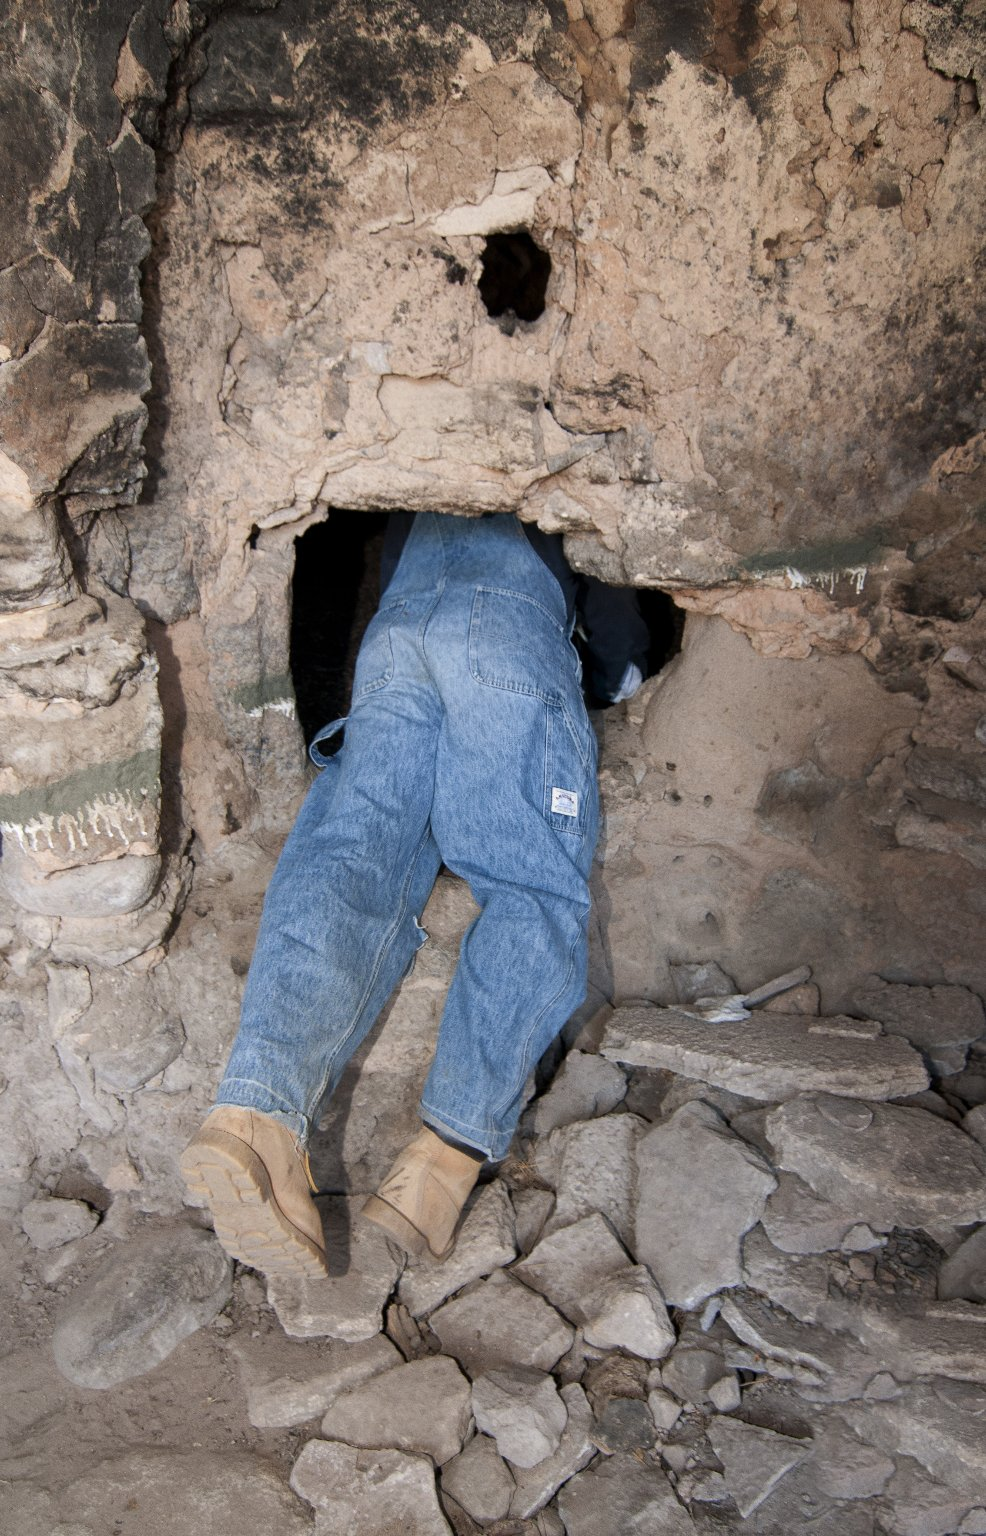 Dr. Steve Nash crawls through a door at the Hinkle Park Cliff dwelling research site.